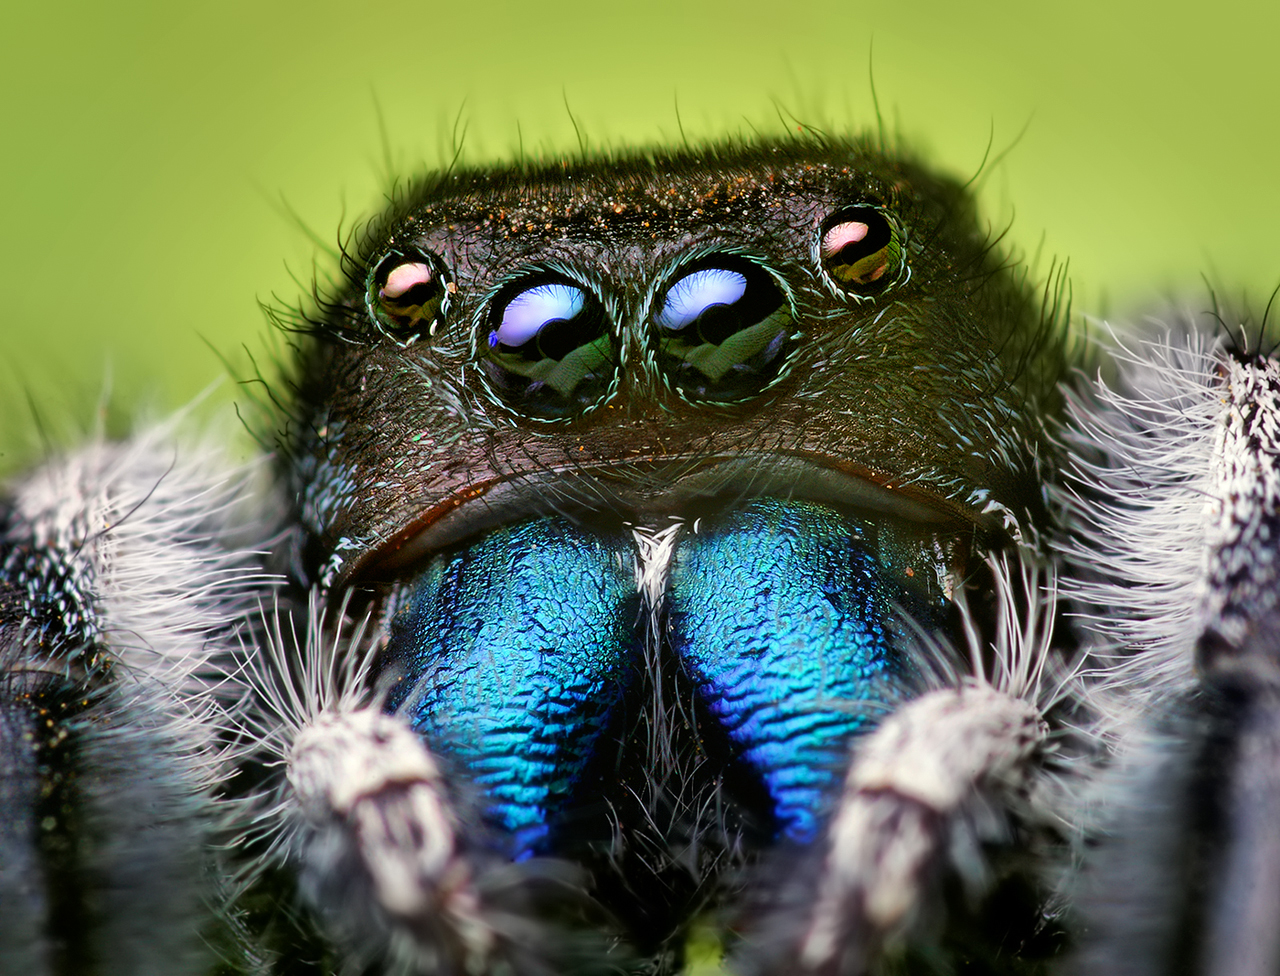 Acrachnid jumping spider from Wikimedia Commons